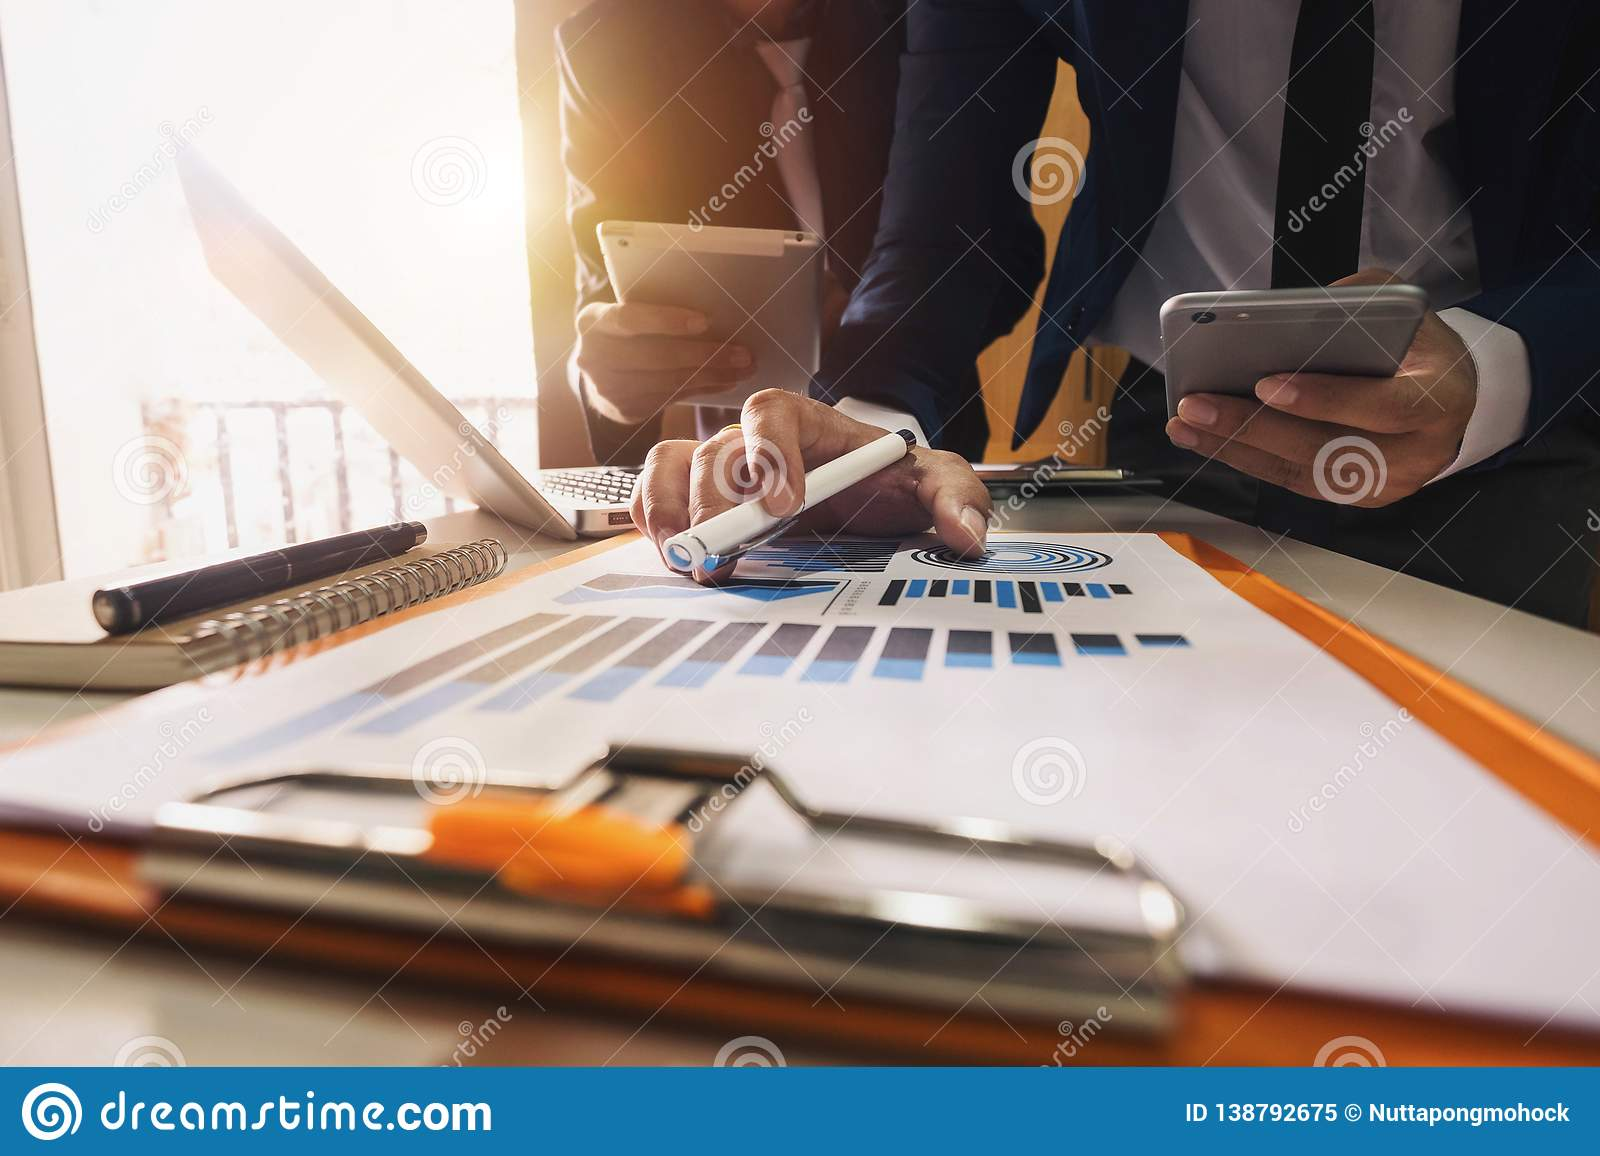 Three business meeting professional investor working together